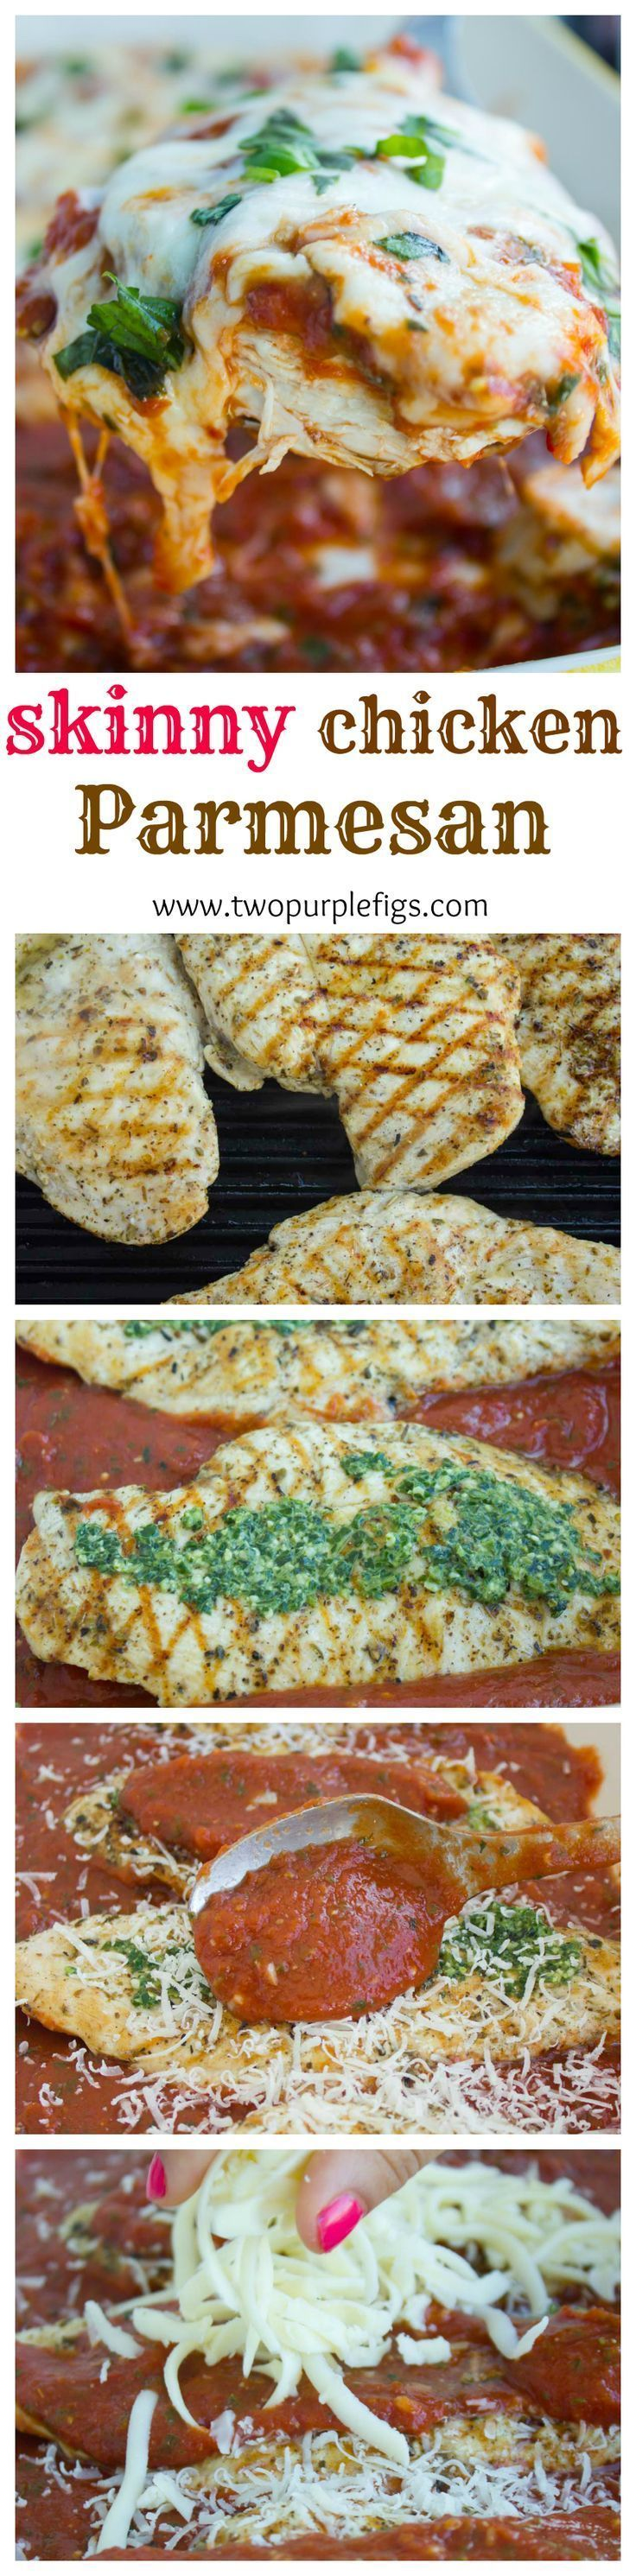 Skinny Grilled Chicken Parmesan--a step by step, quick easy crowd pleasing comfort chicken dinner in minutes! Get this recipe now and make it forever! http://www.twopurplefigs.com